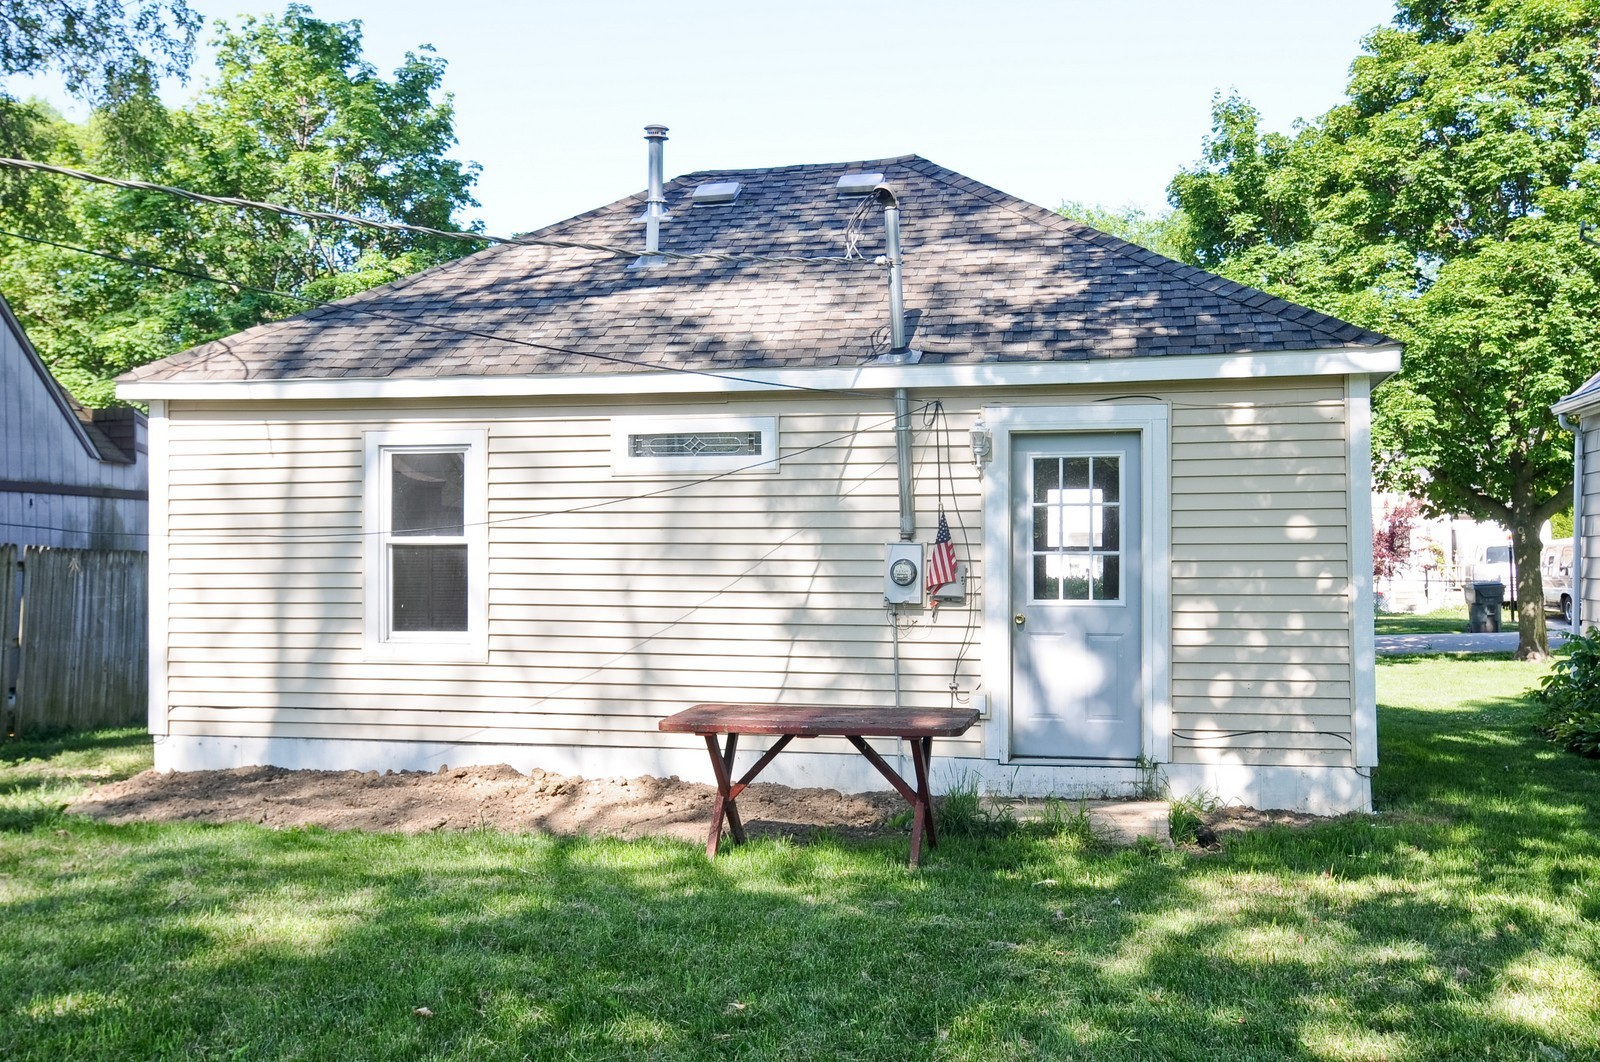 Real Estate Photography - 321 N Bellevue, Round Lake Park, IL, 60073 - Rear View